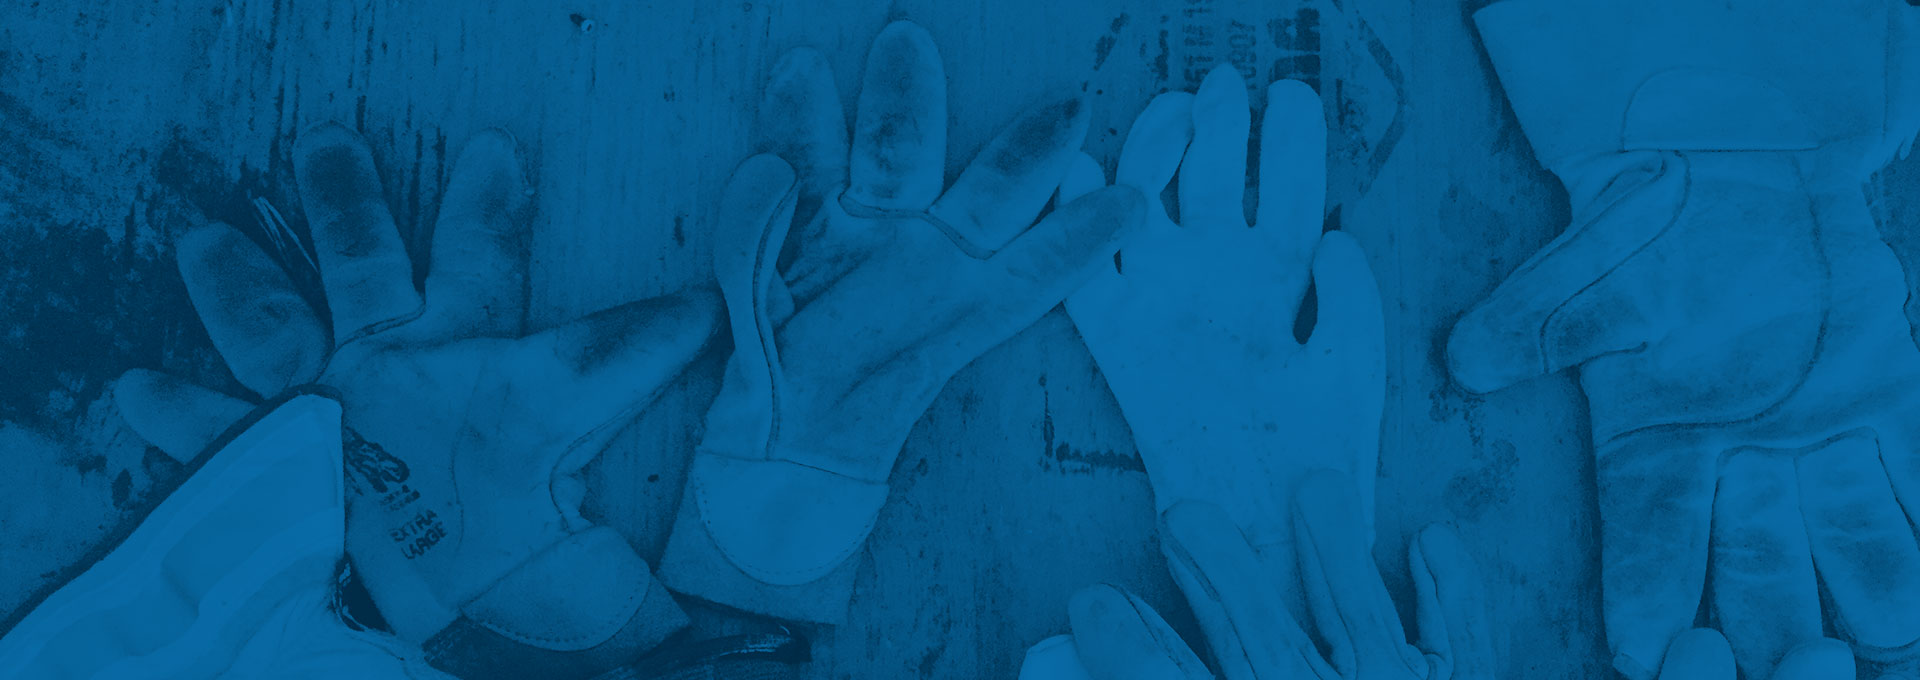 Watson Gloves: Durable, Safe and Sustainable Hand Protection For All Purposes